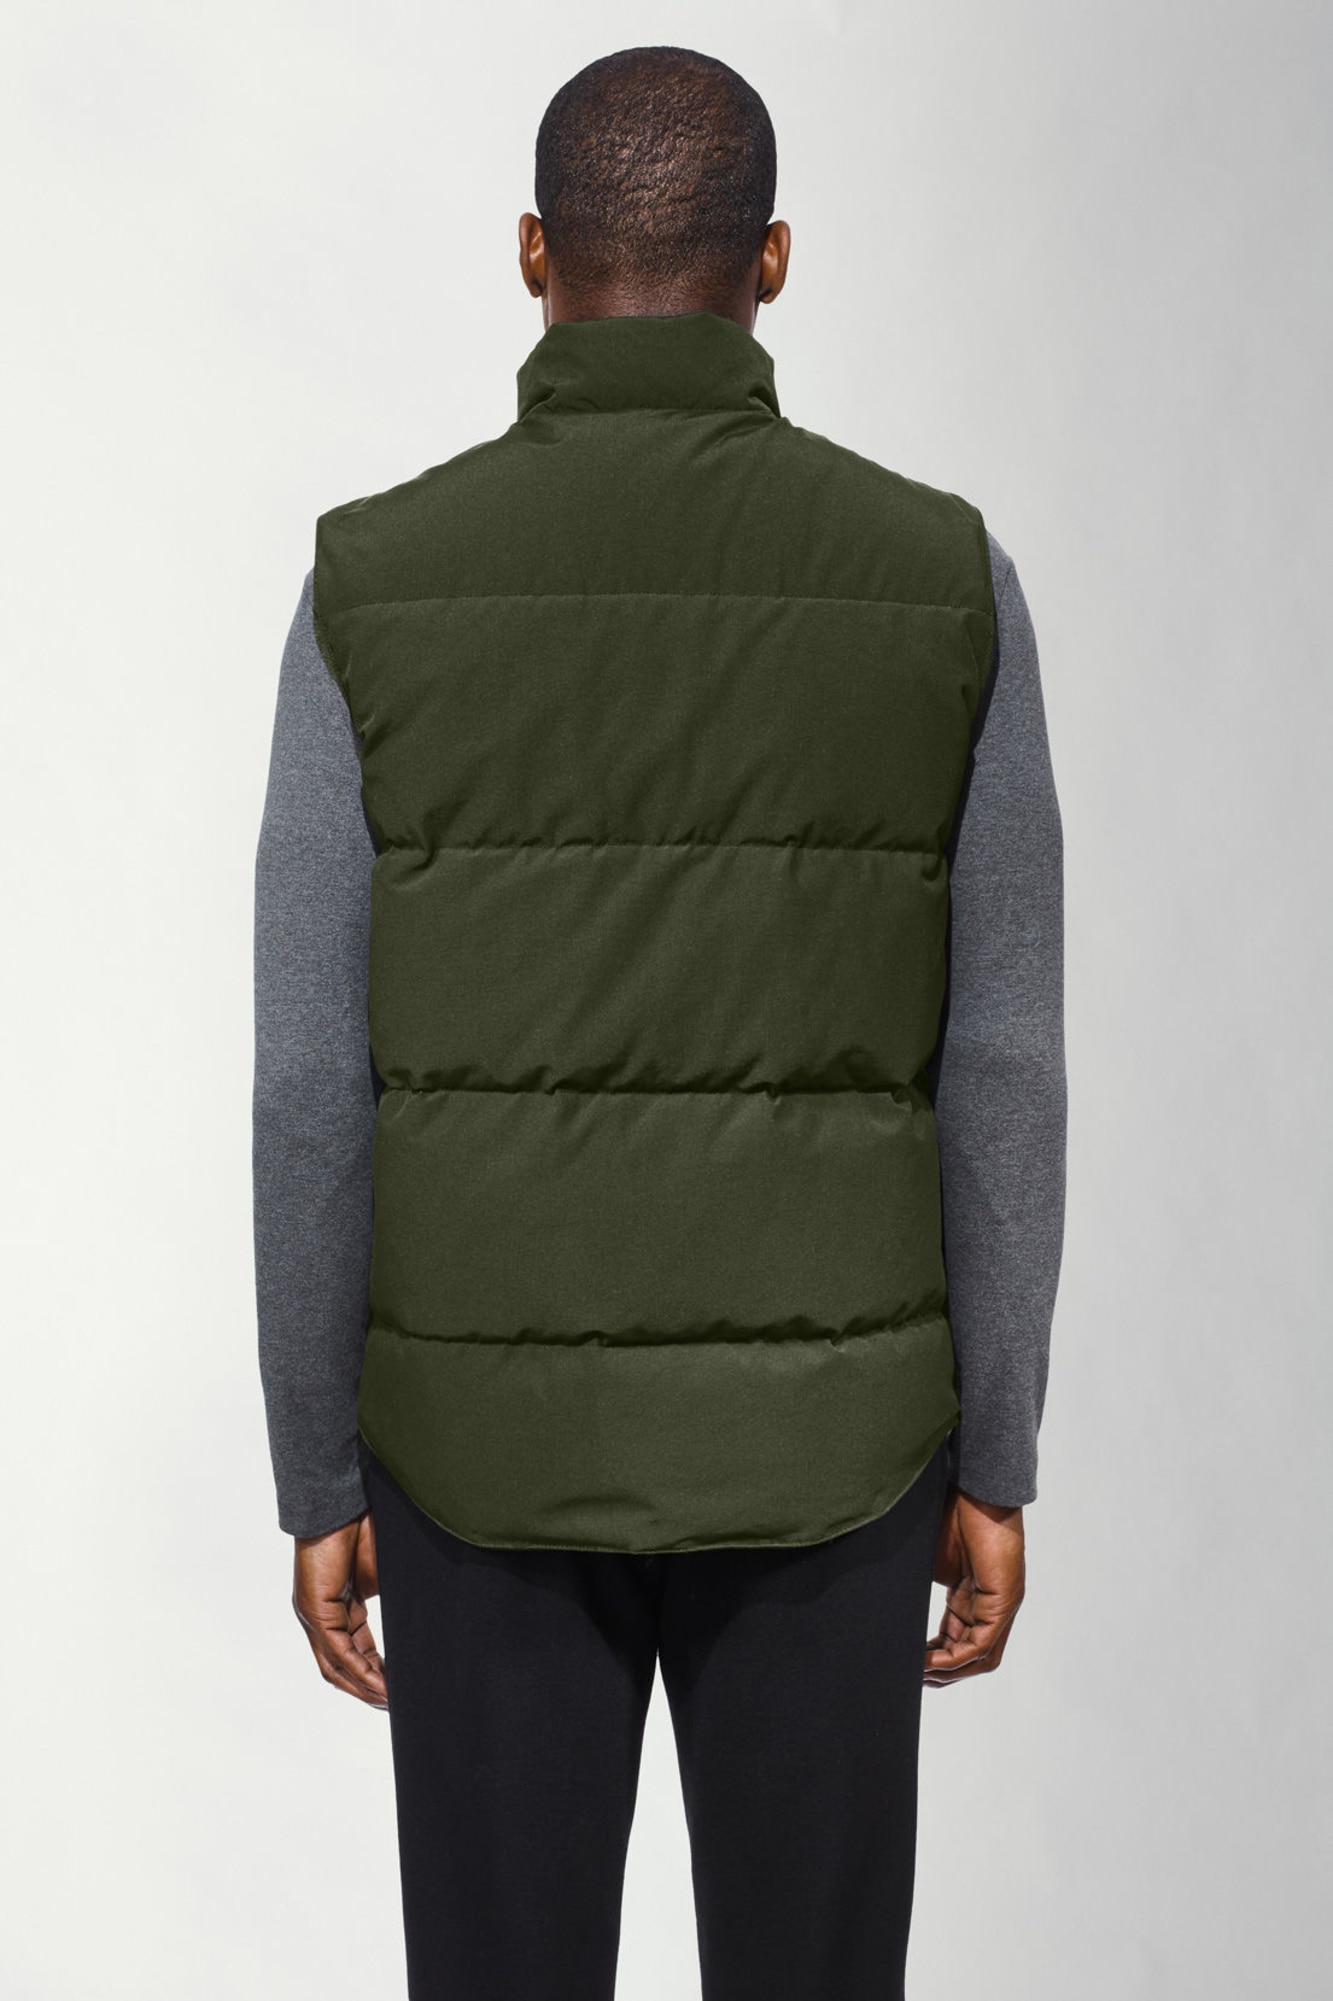 Outlet Military Green Canada Goose Vests Freestyle Crew Vest Canada Goose  Black Friday Sale 4154M 1cf22d910